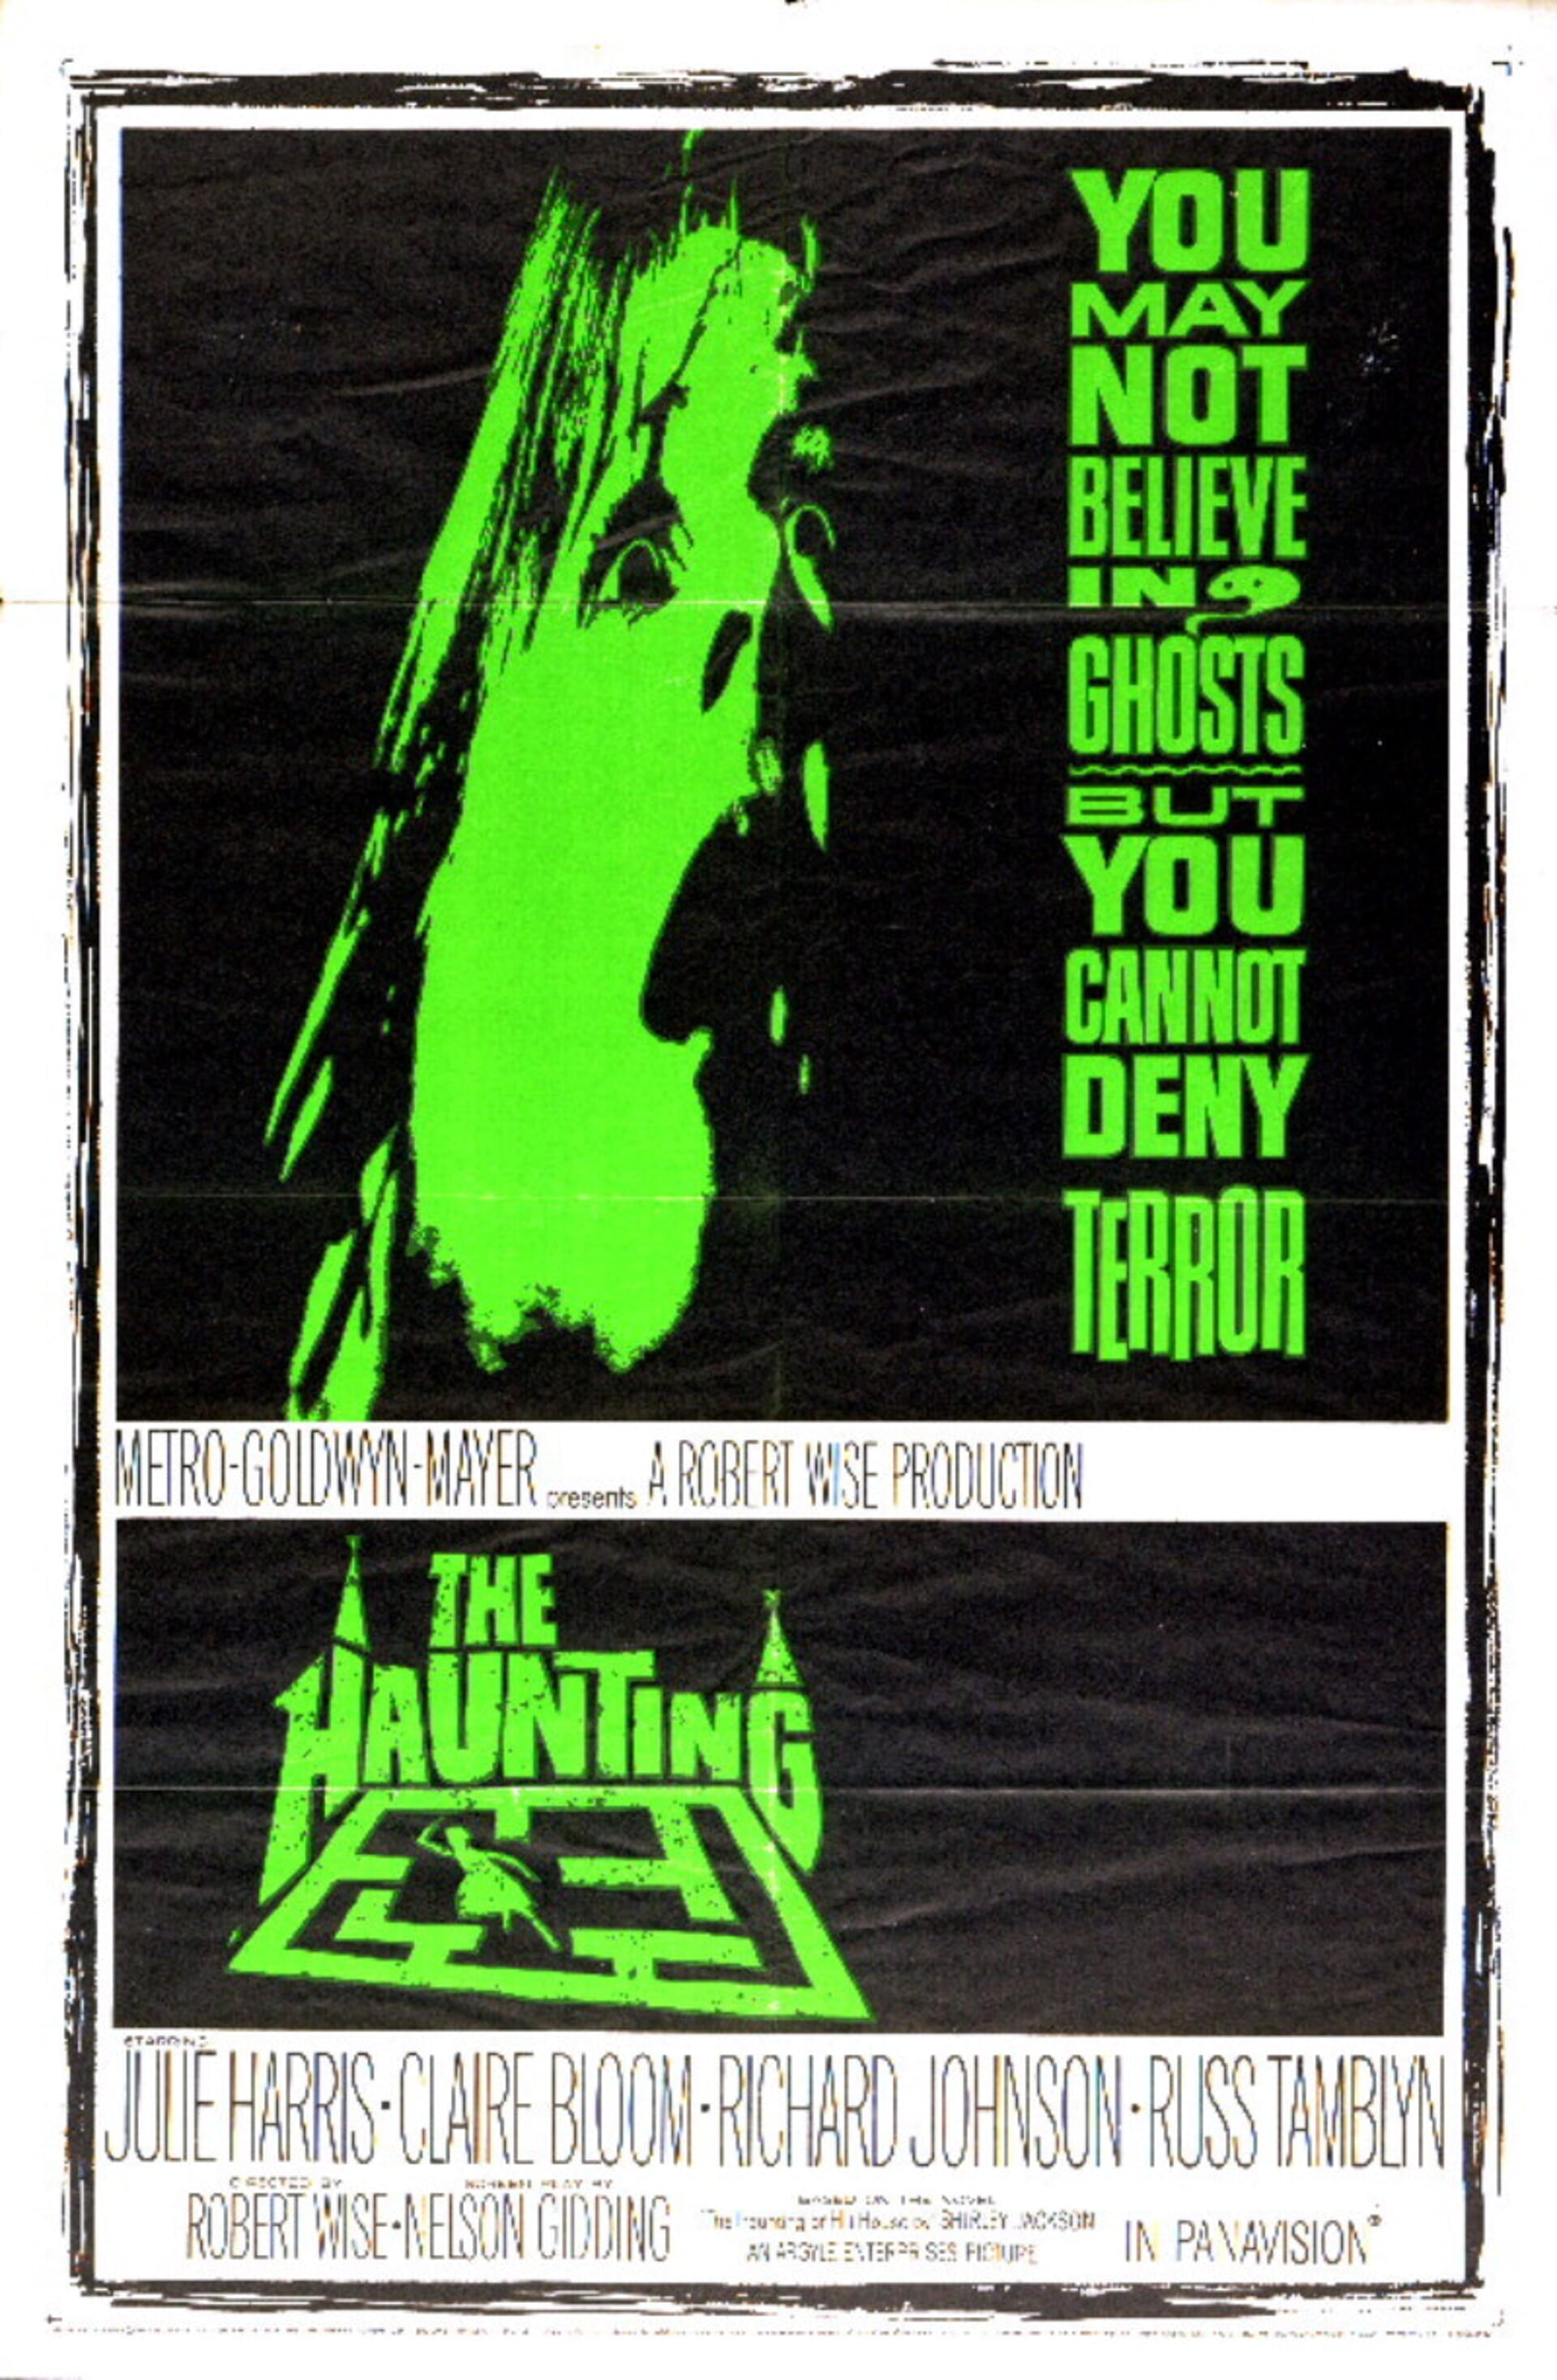 The Haunting - Poster 1